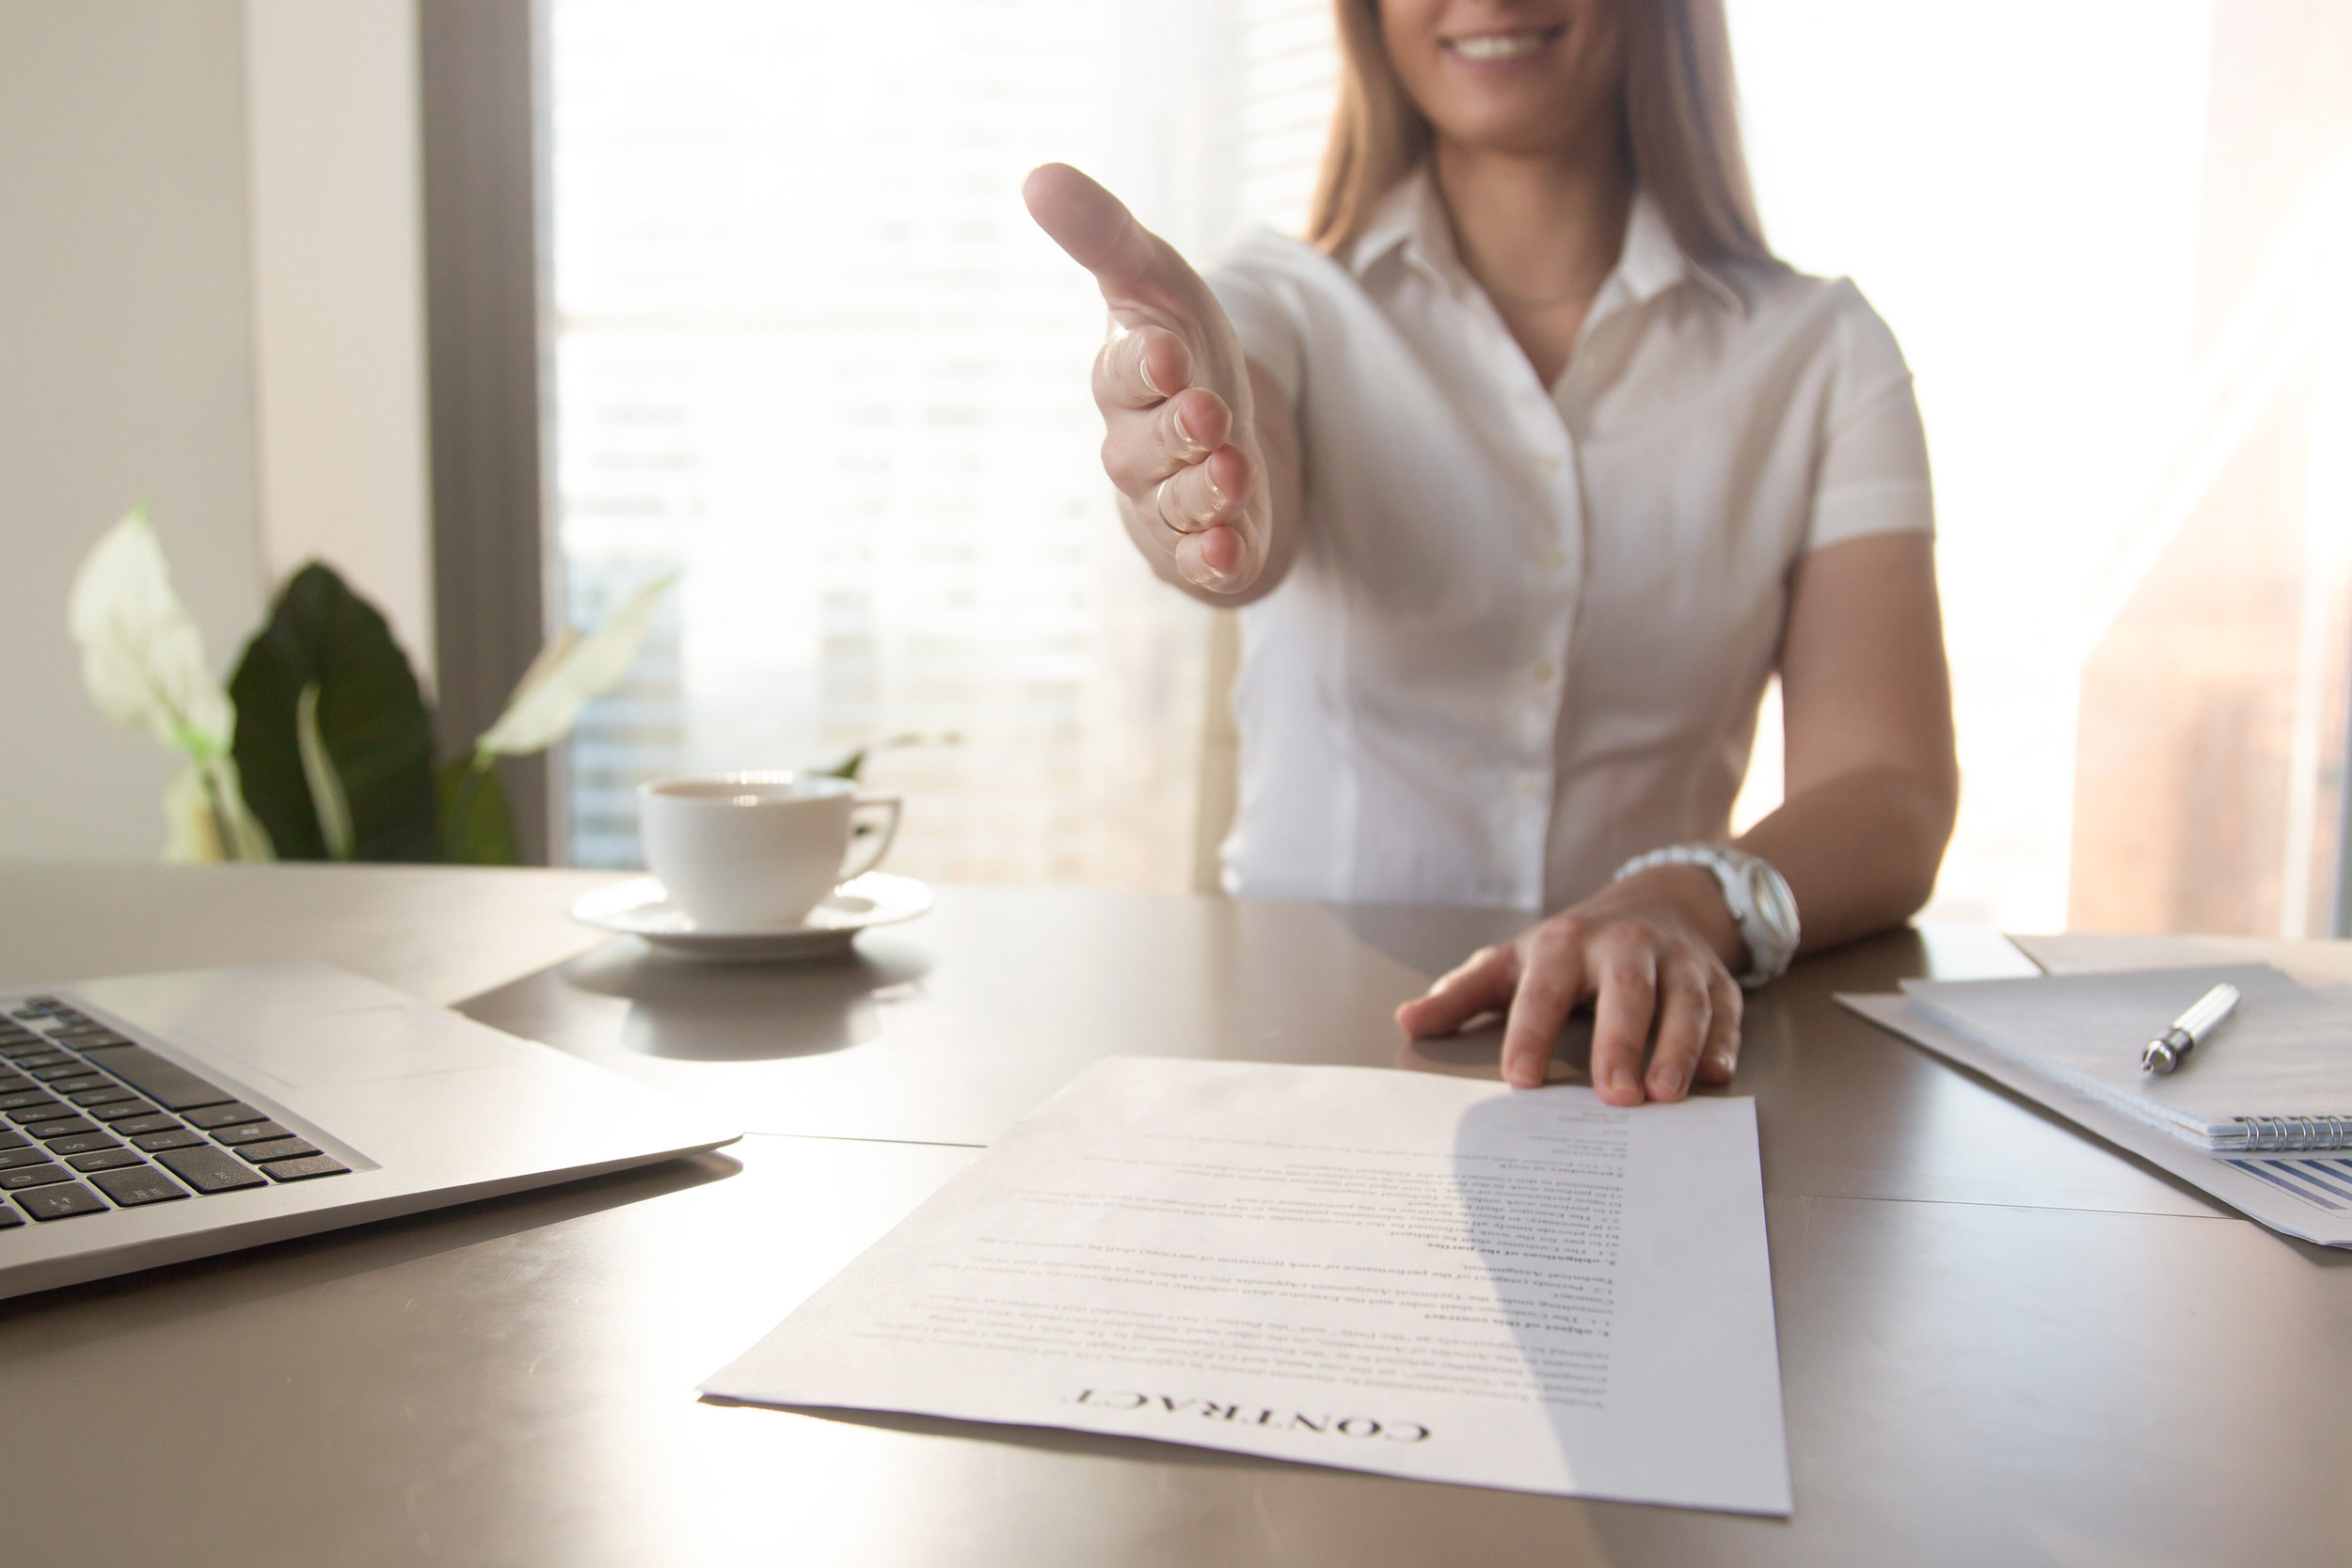 Our Guarantees - Talent Savant's goal is to get you a great hire. Period. That's why our comprehensive guarantee is at the very top of the industry.